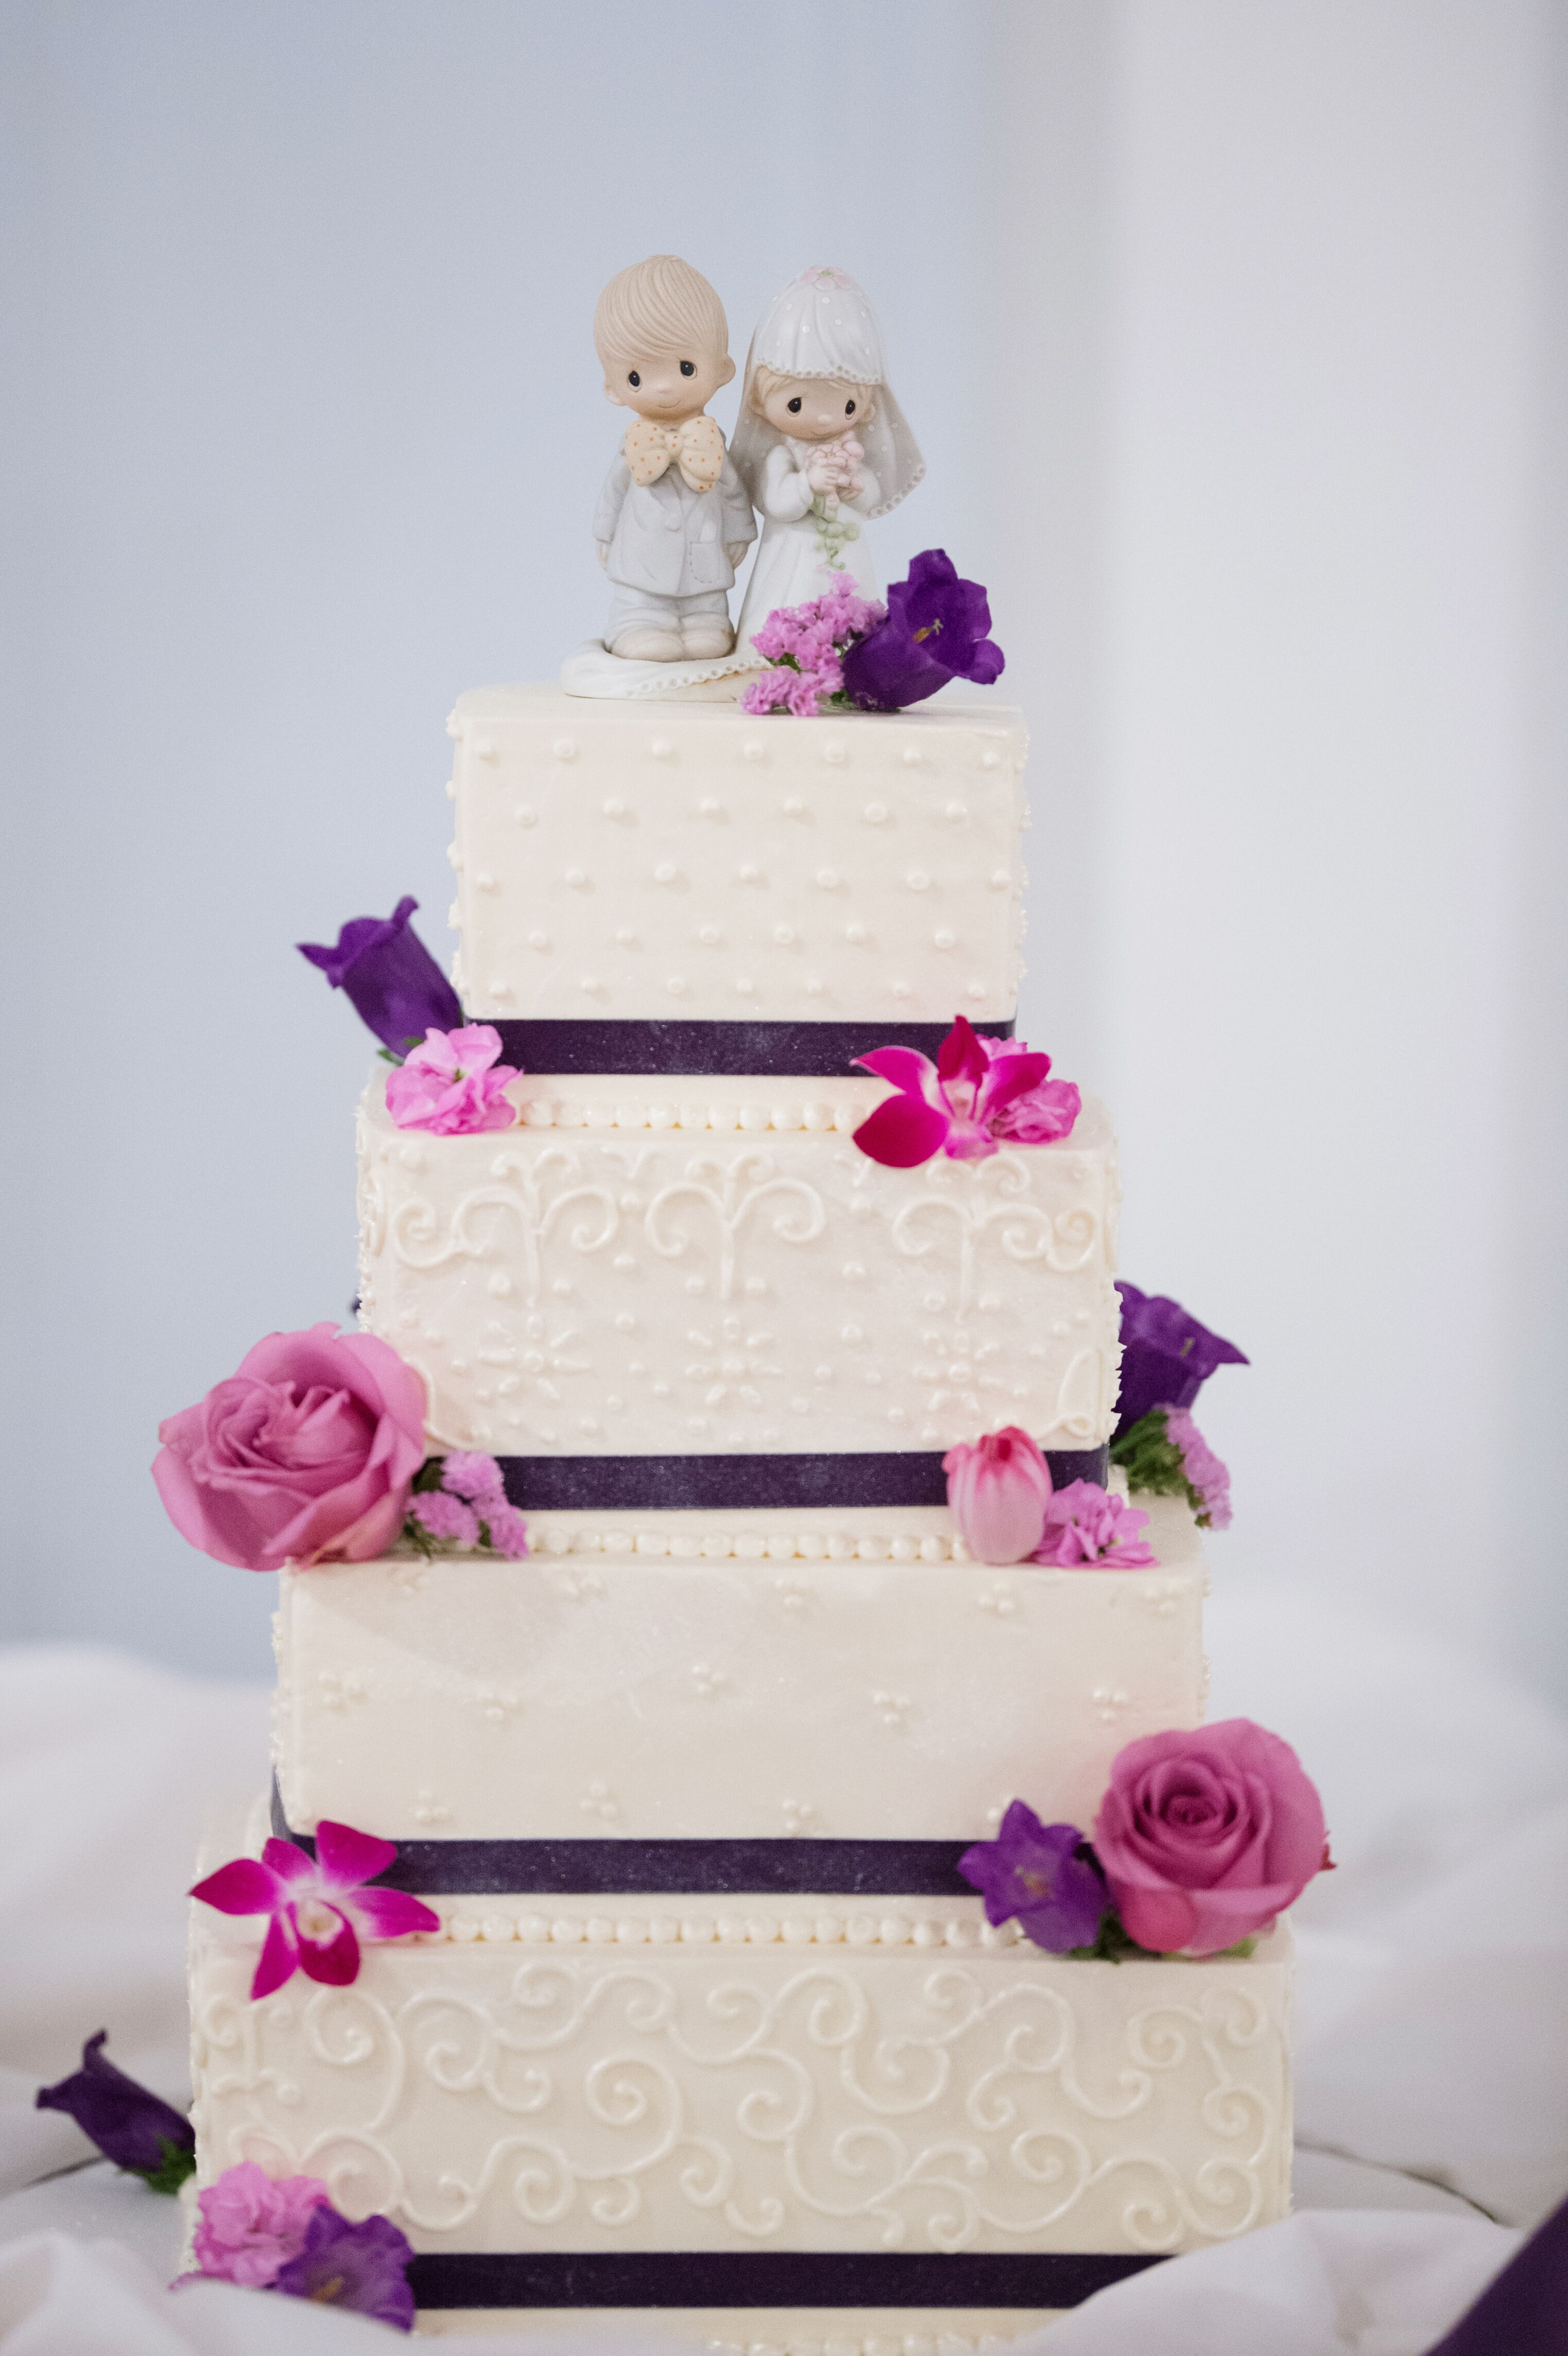 Square Tiered White Cake With Pink And Purple Flowers And